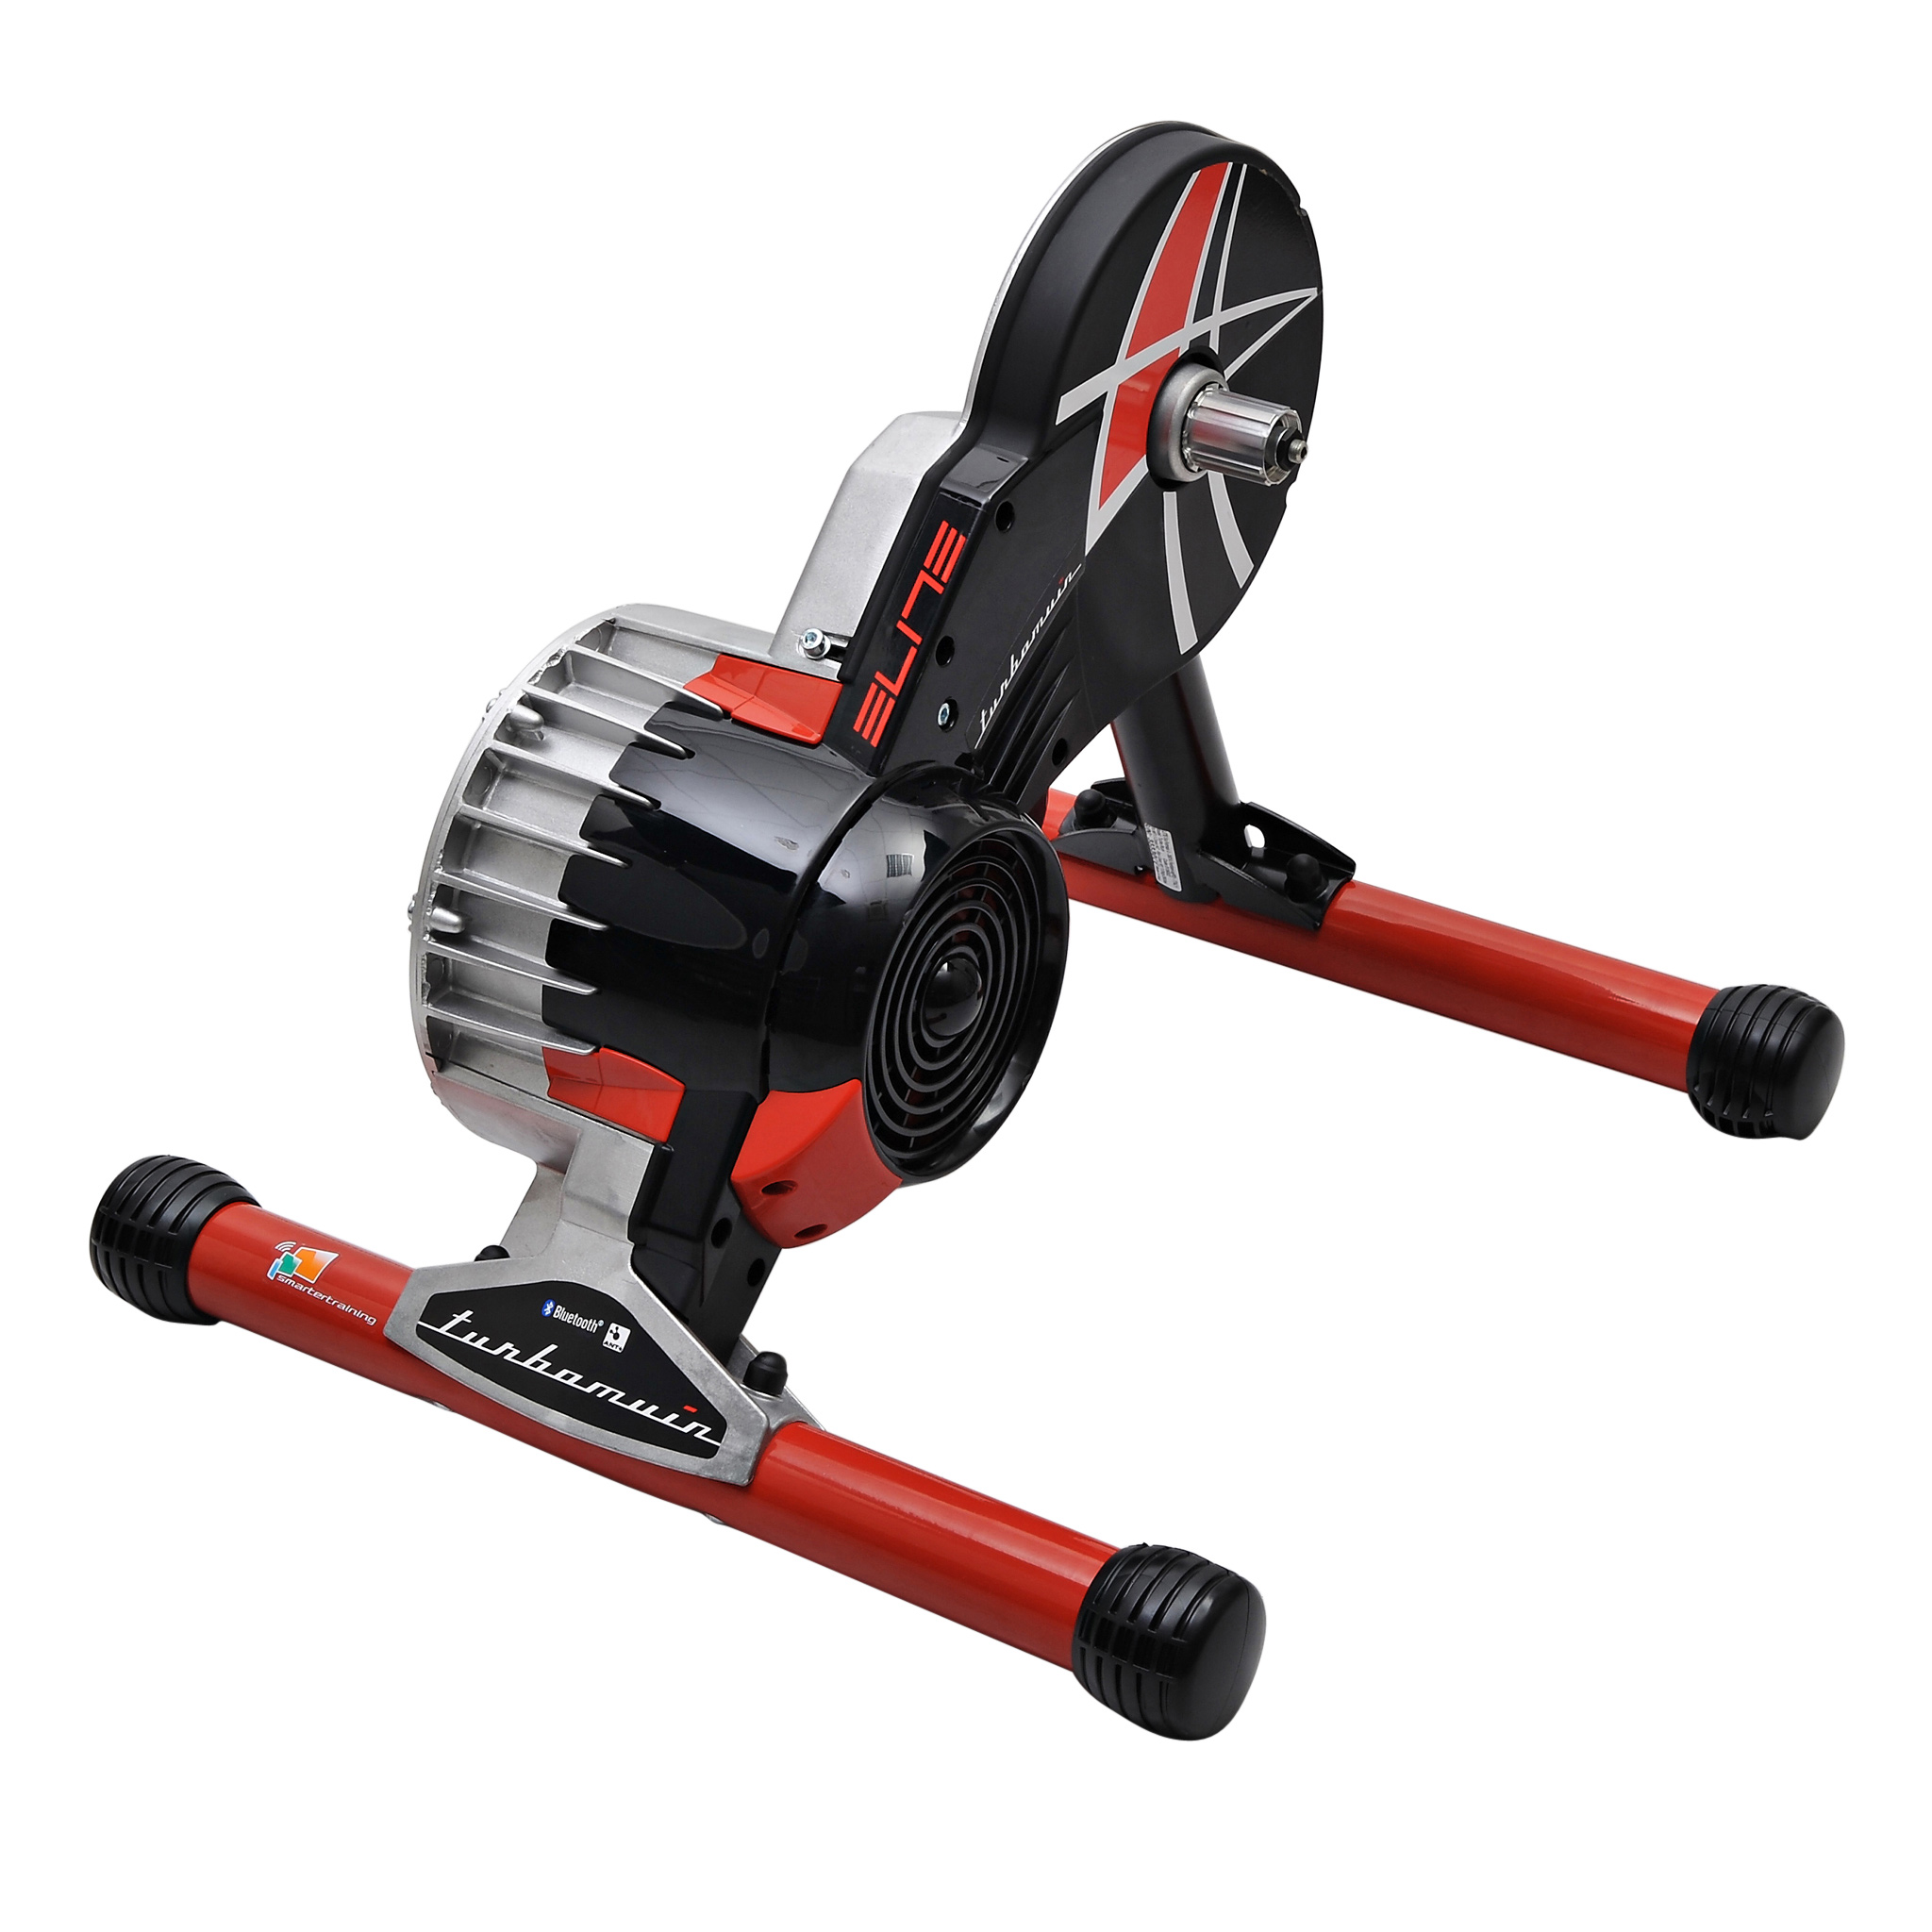 Rodillo de entrenamiento ELITE TURBO MUIN Smart B+